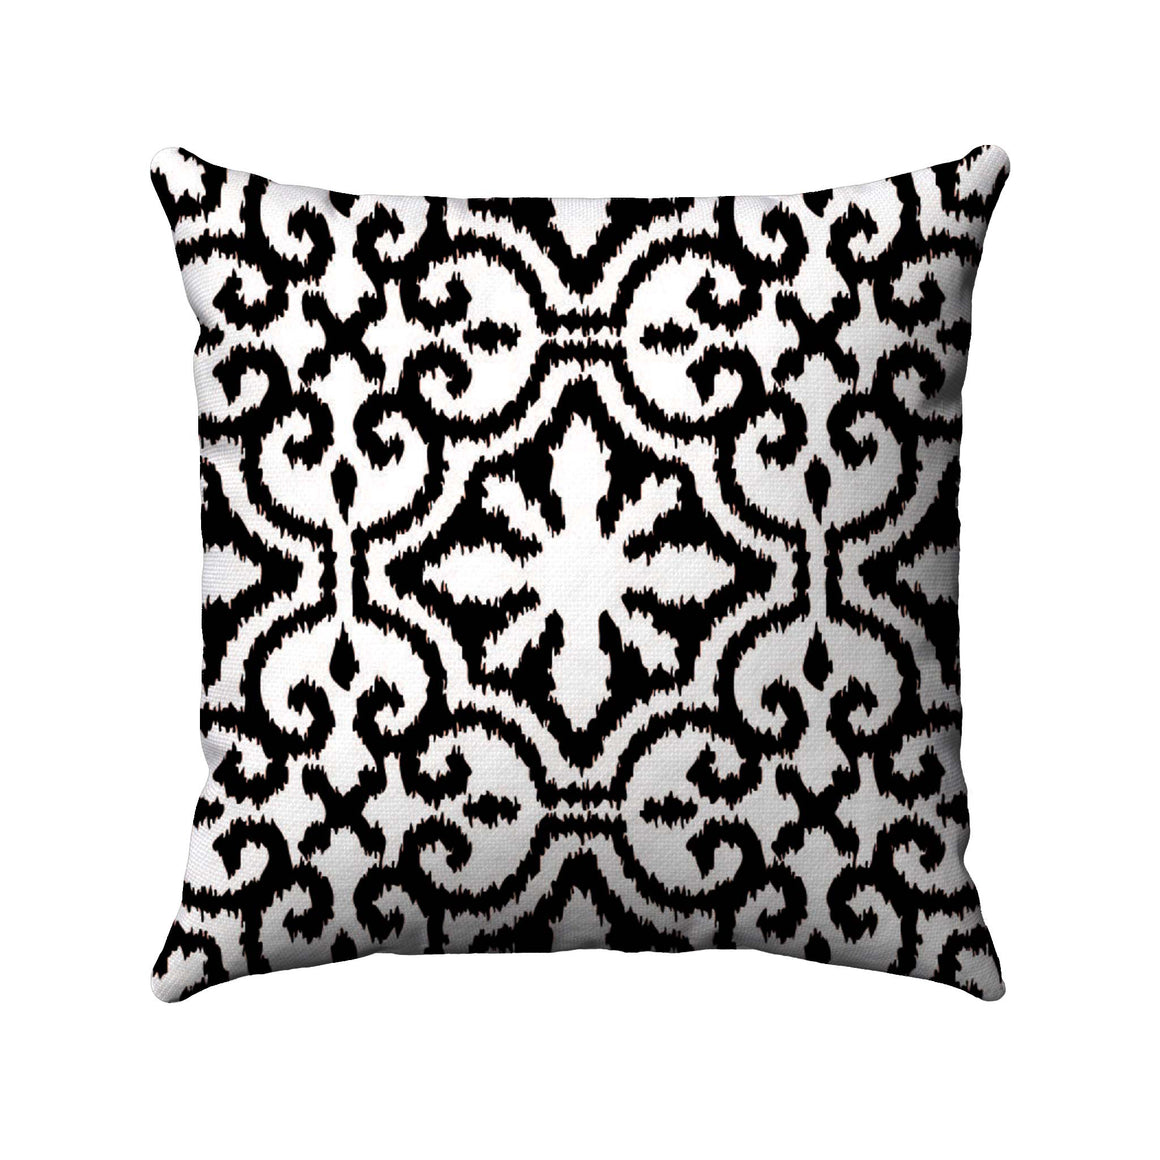 Black damask ikat design on a white background